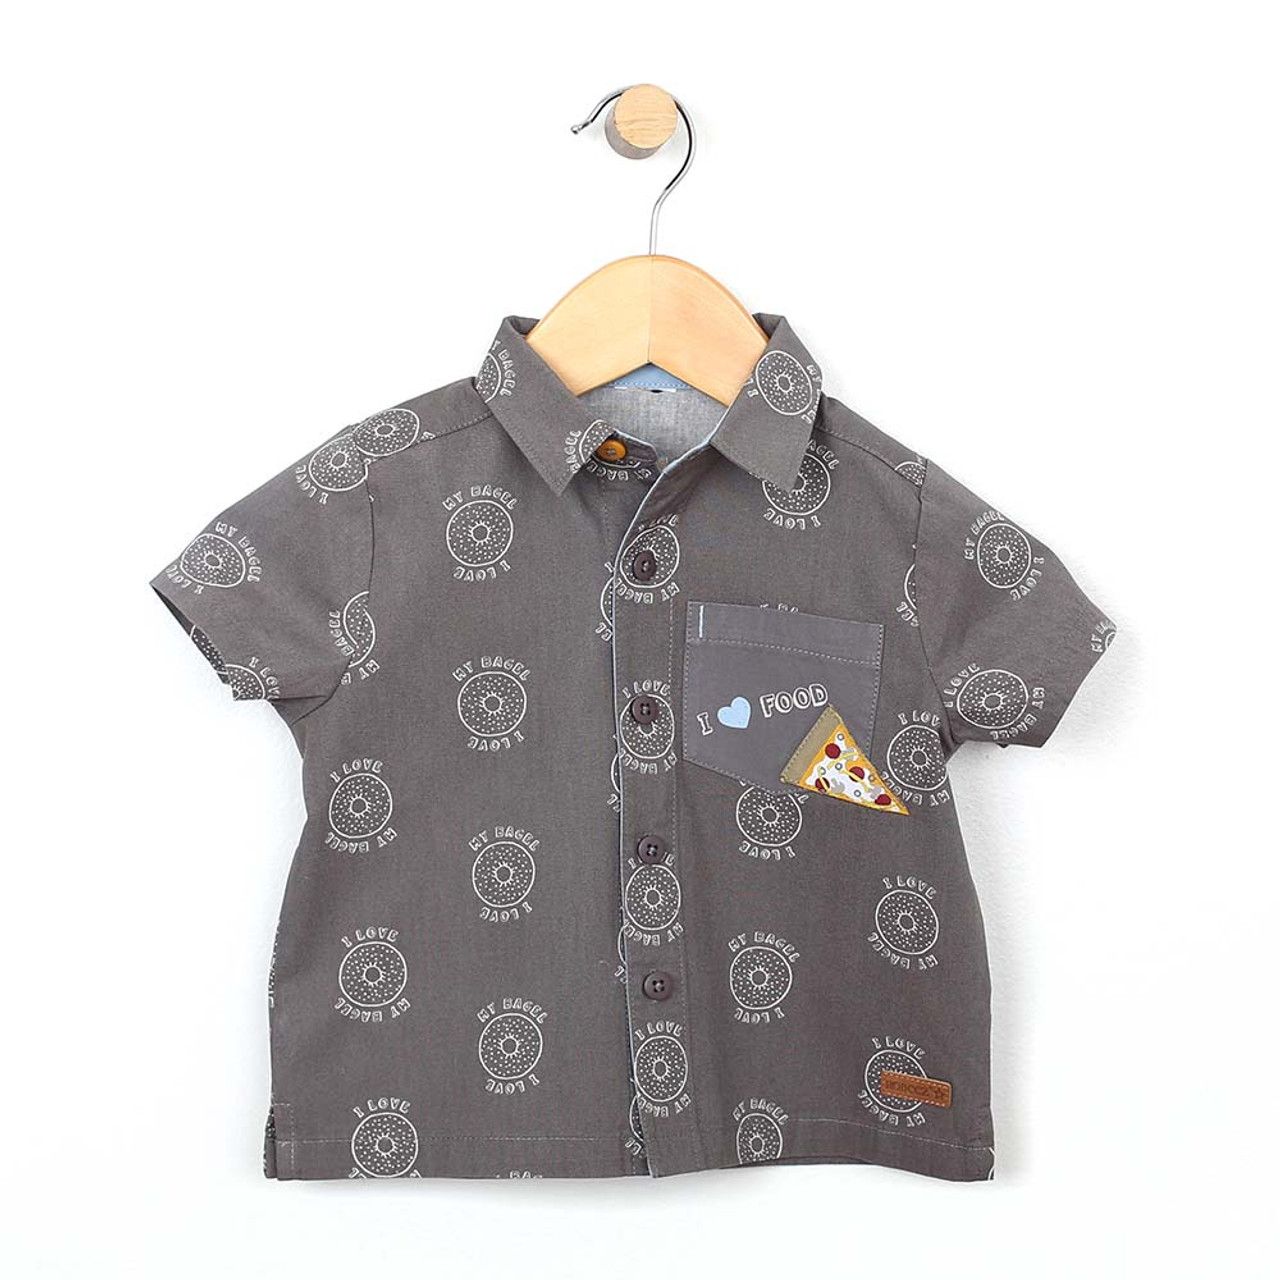 d23bbd68bd0 Grey cotton button front woven shirt screen printed with bagels and  features a pizza applique.